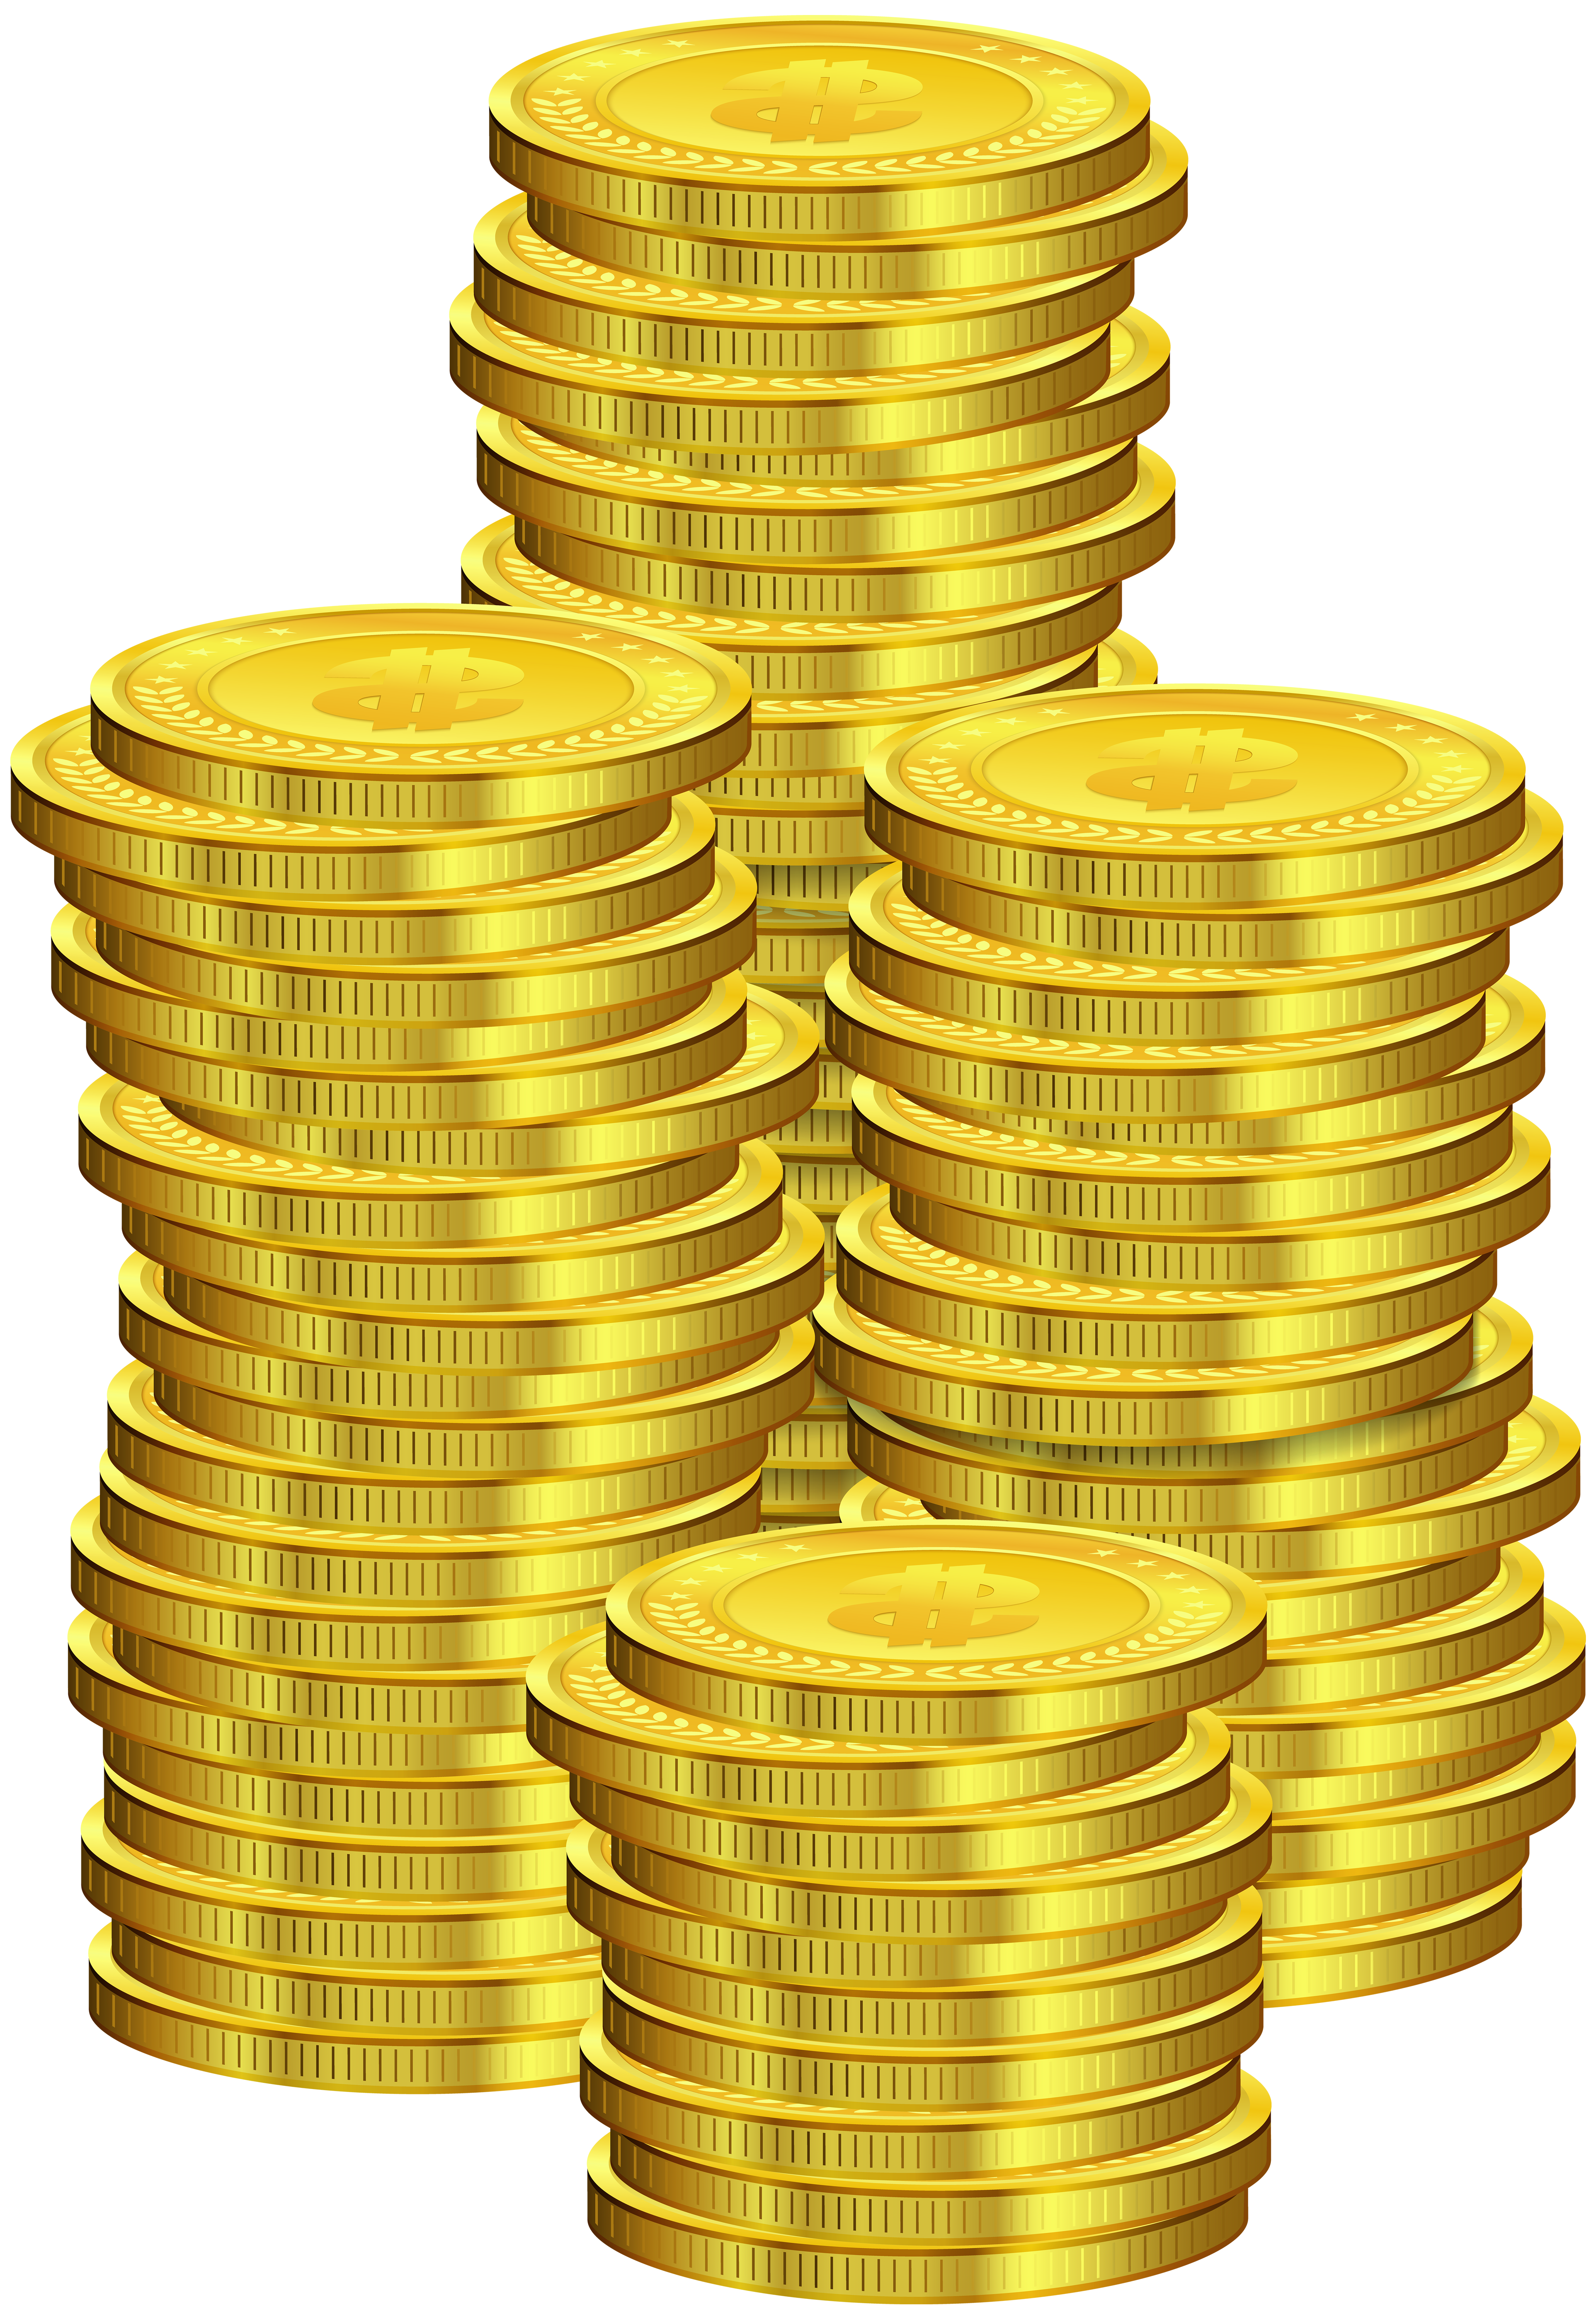 Coins money clipart graphic royalty free stock Coins PNG Clip Art - Best WEB Clipart graphic royalty free stock